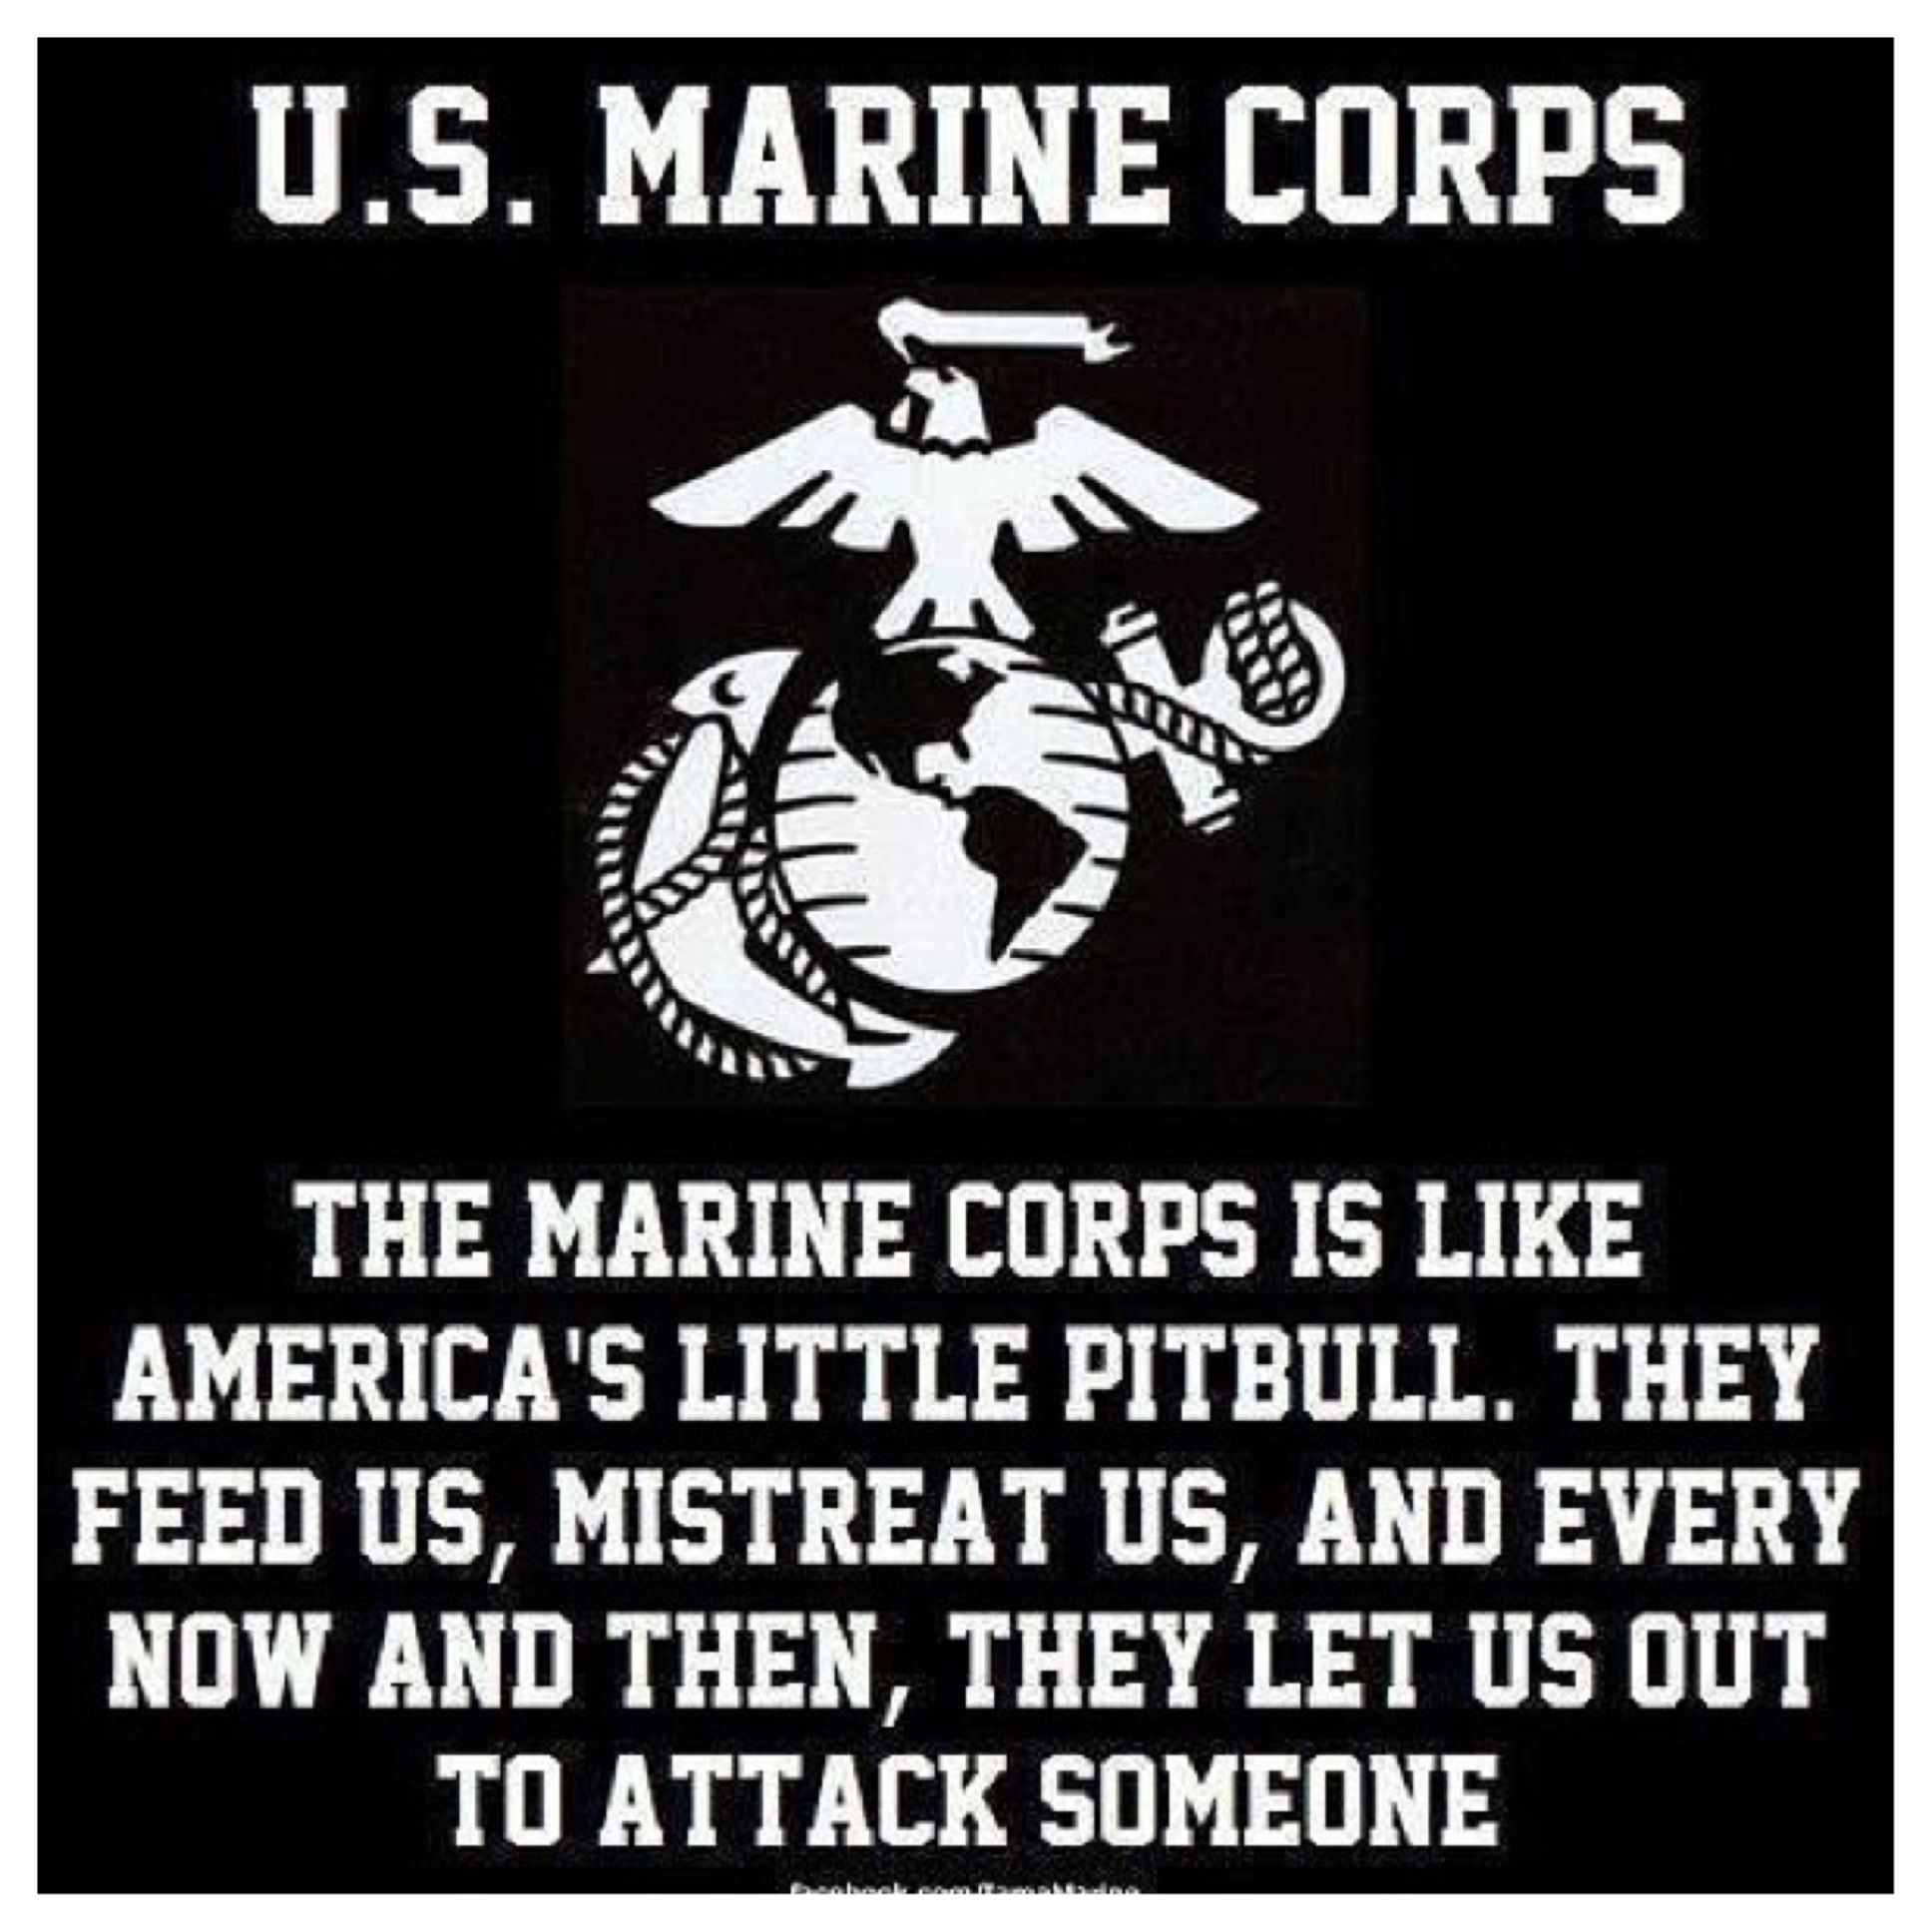 Marines Quotes Fascinating J.b.atlsuperman  Instagram Photos And Videos  Marine Corps . Design Inspiration